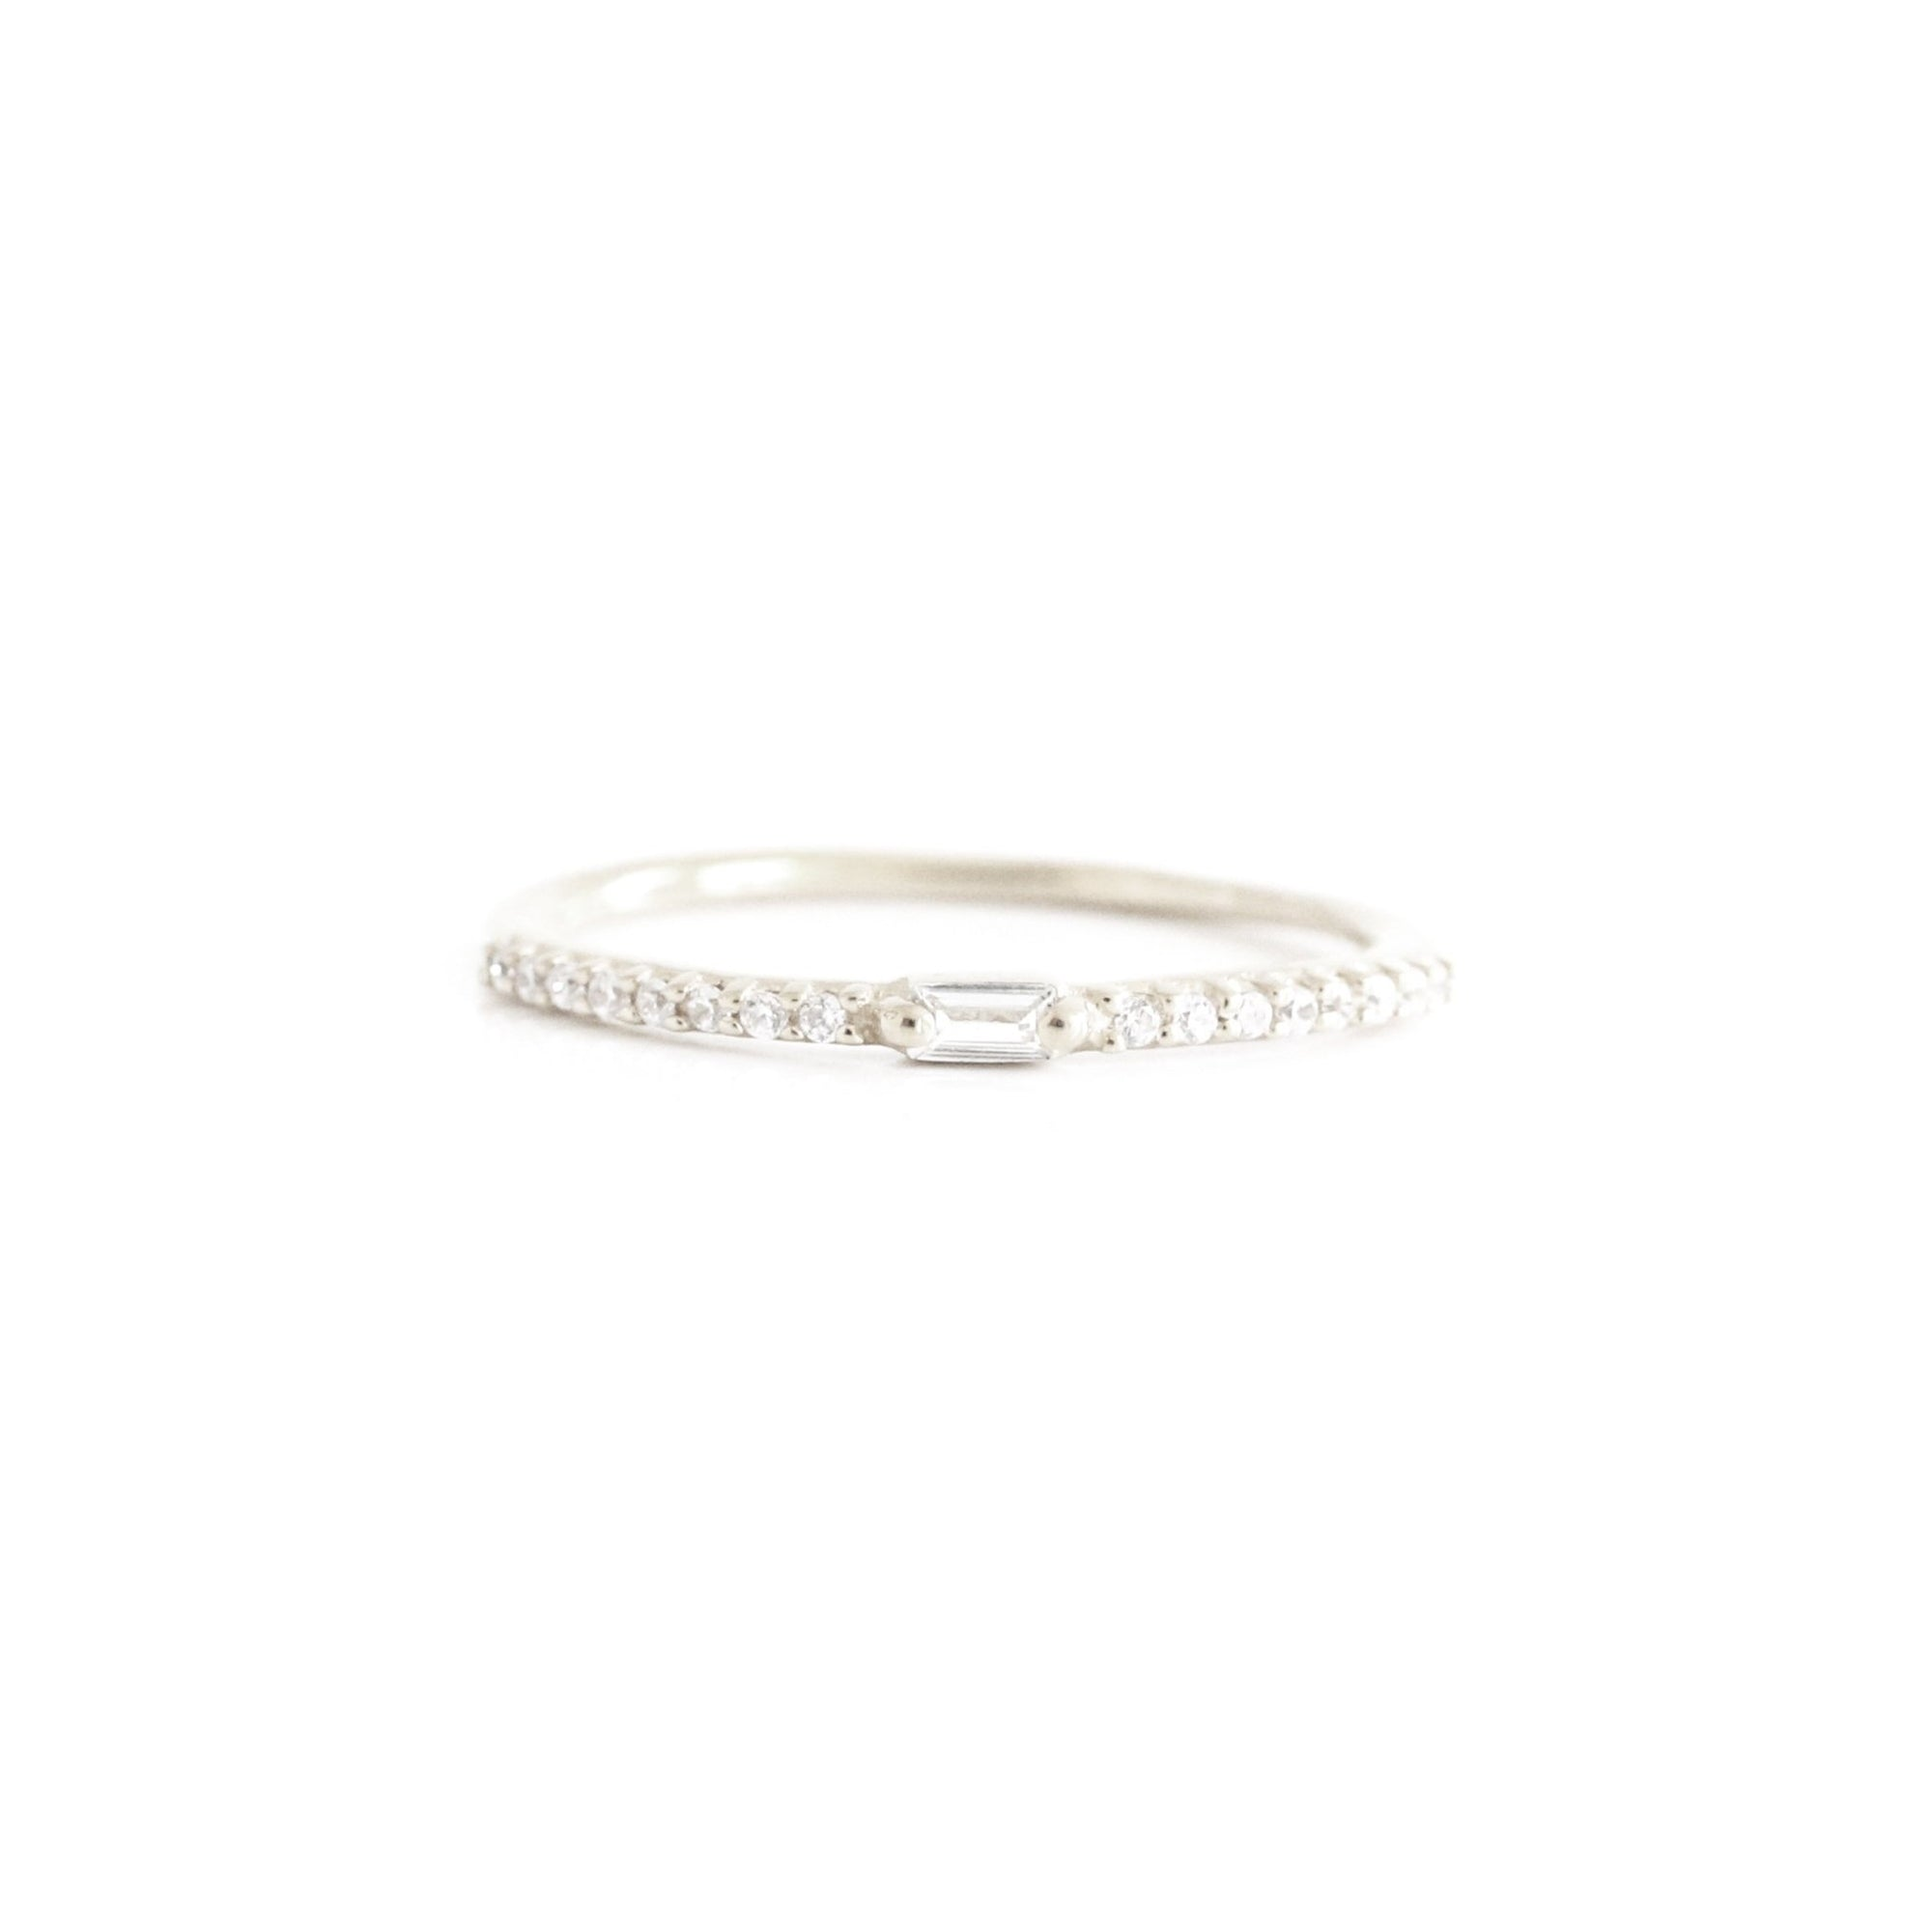 Loyal Prism Stacking Ring - White Topaz & Silver - SO PRETTY CARA COTTER